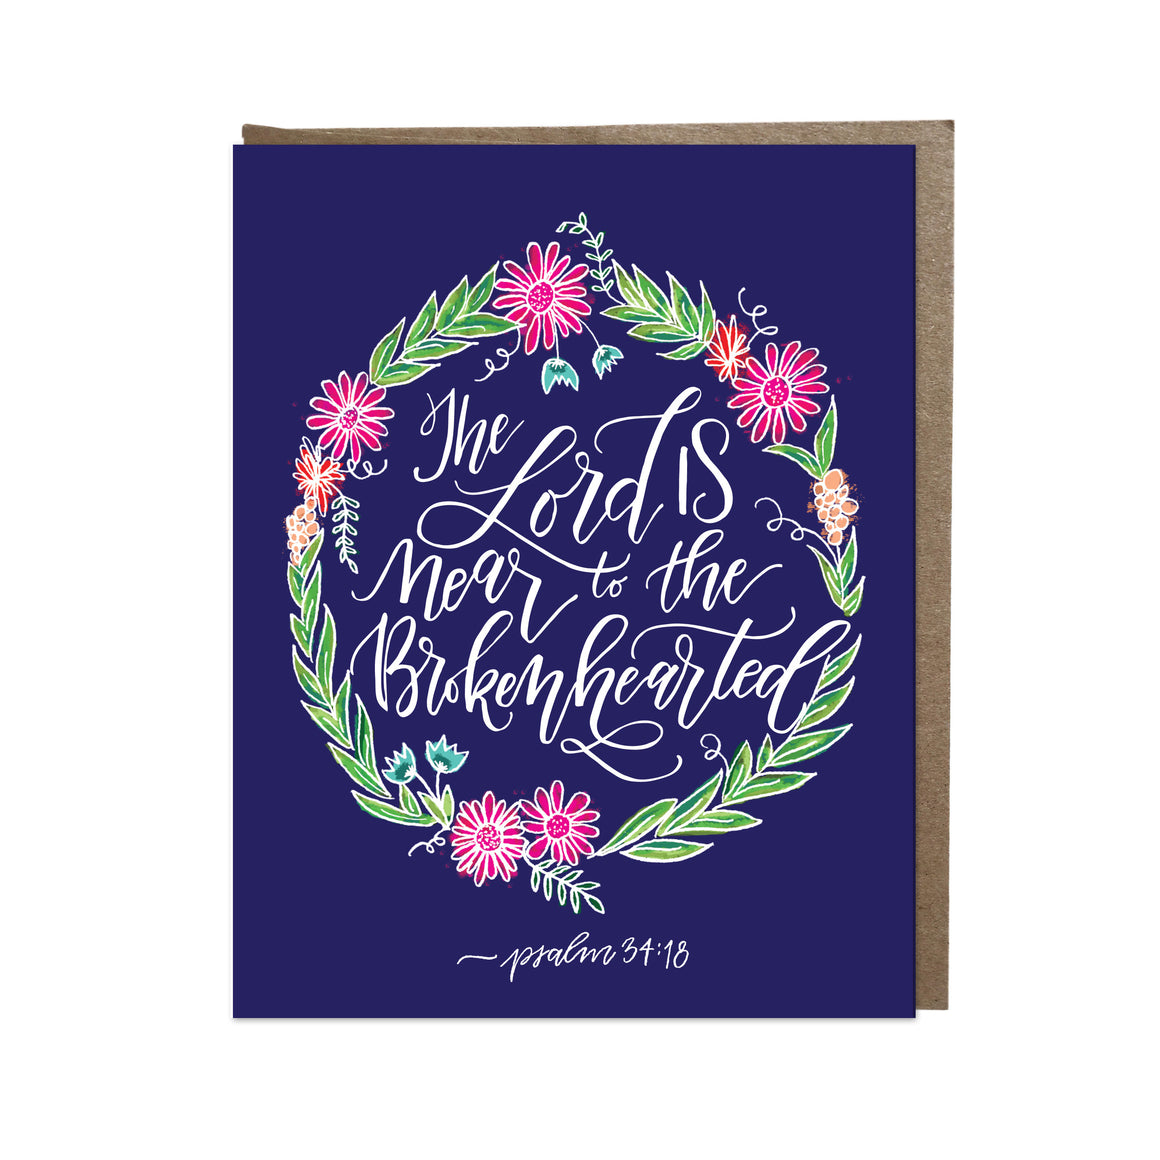 """Near to the Brokenhearted"" card"